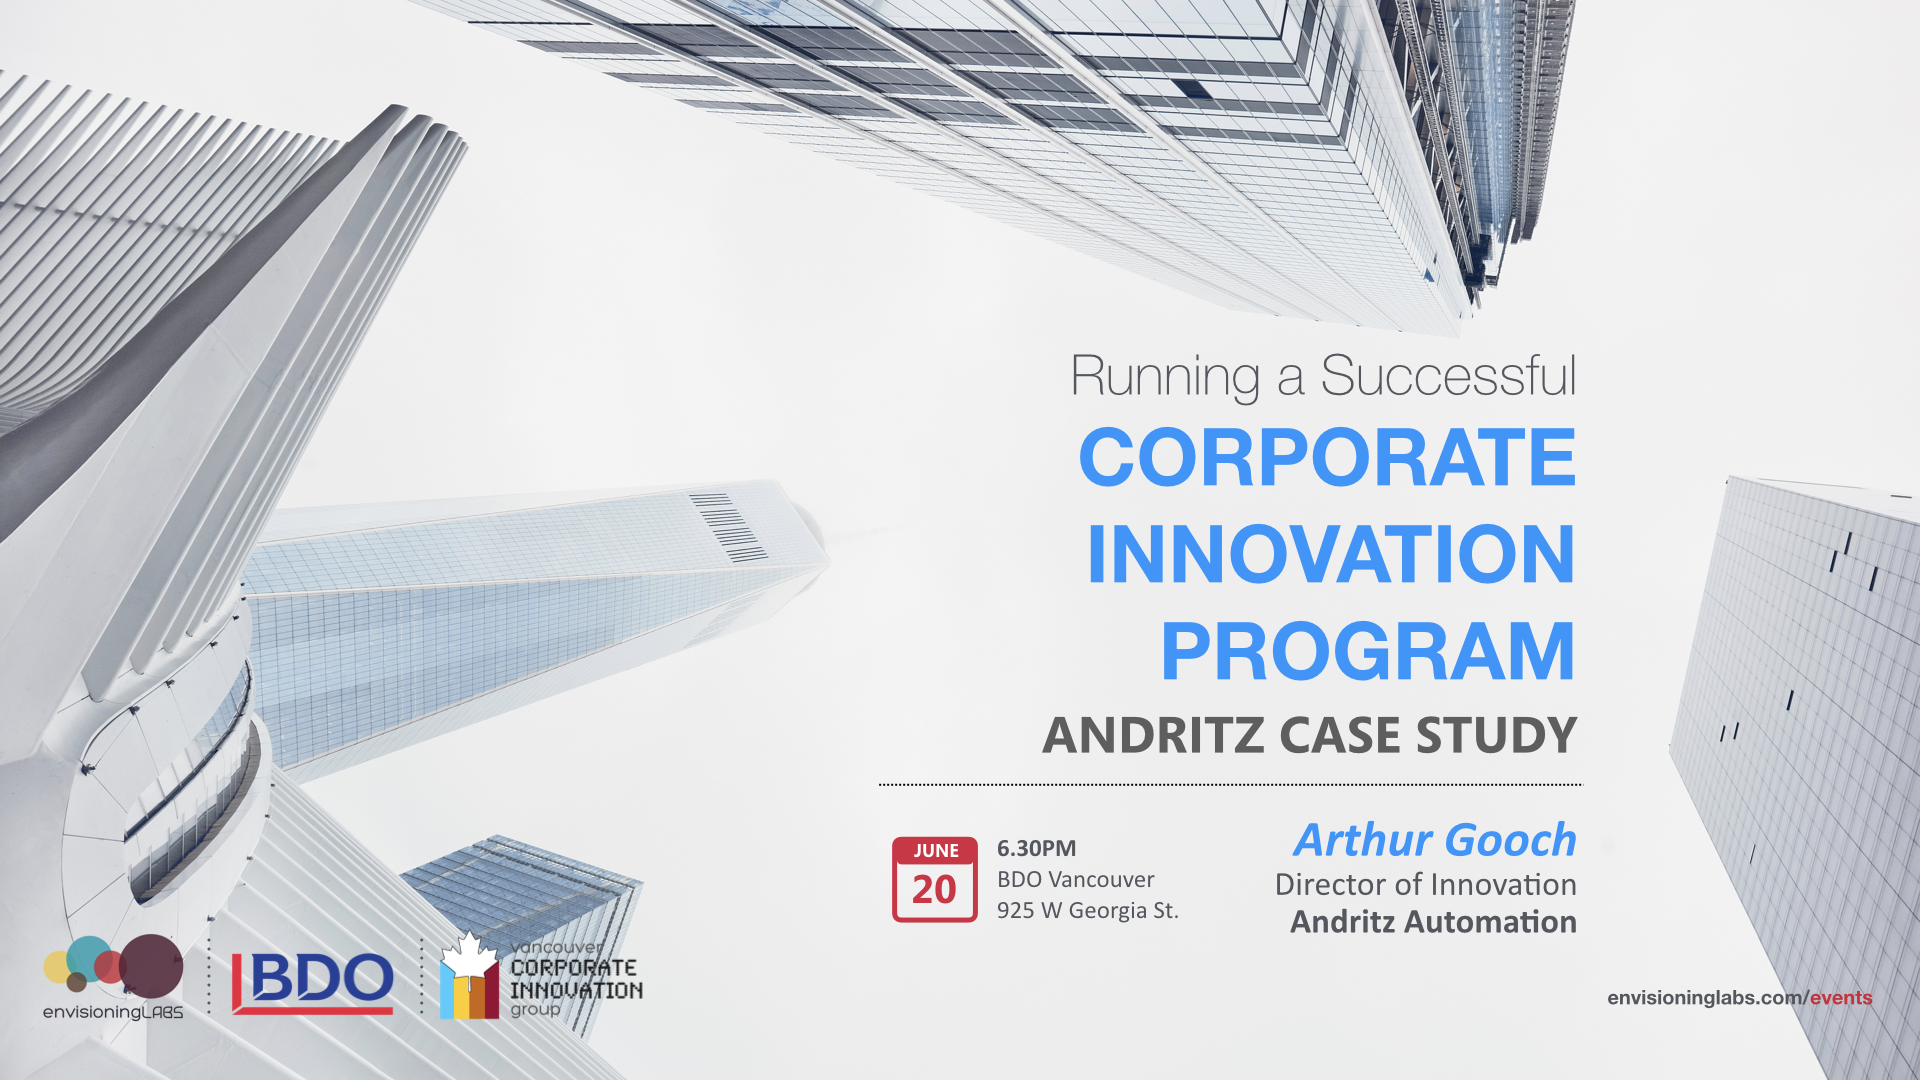 Vancouver corporate innovation labs presents Andritz